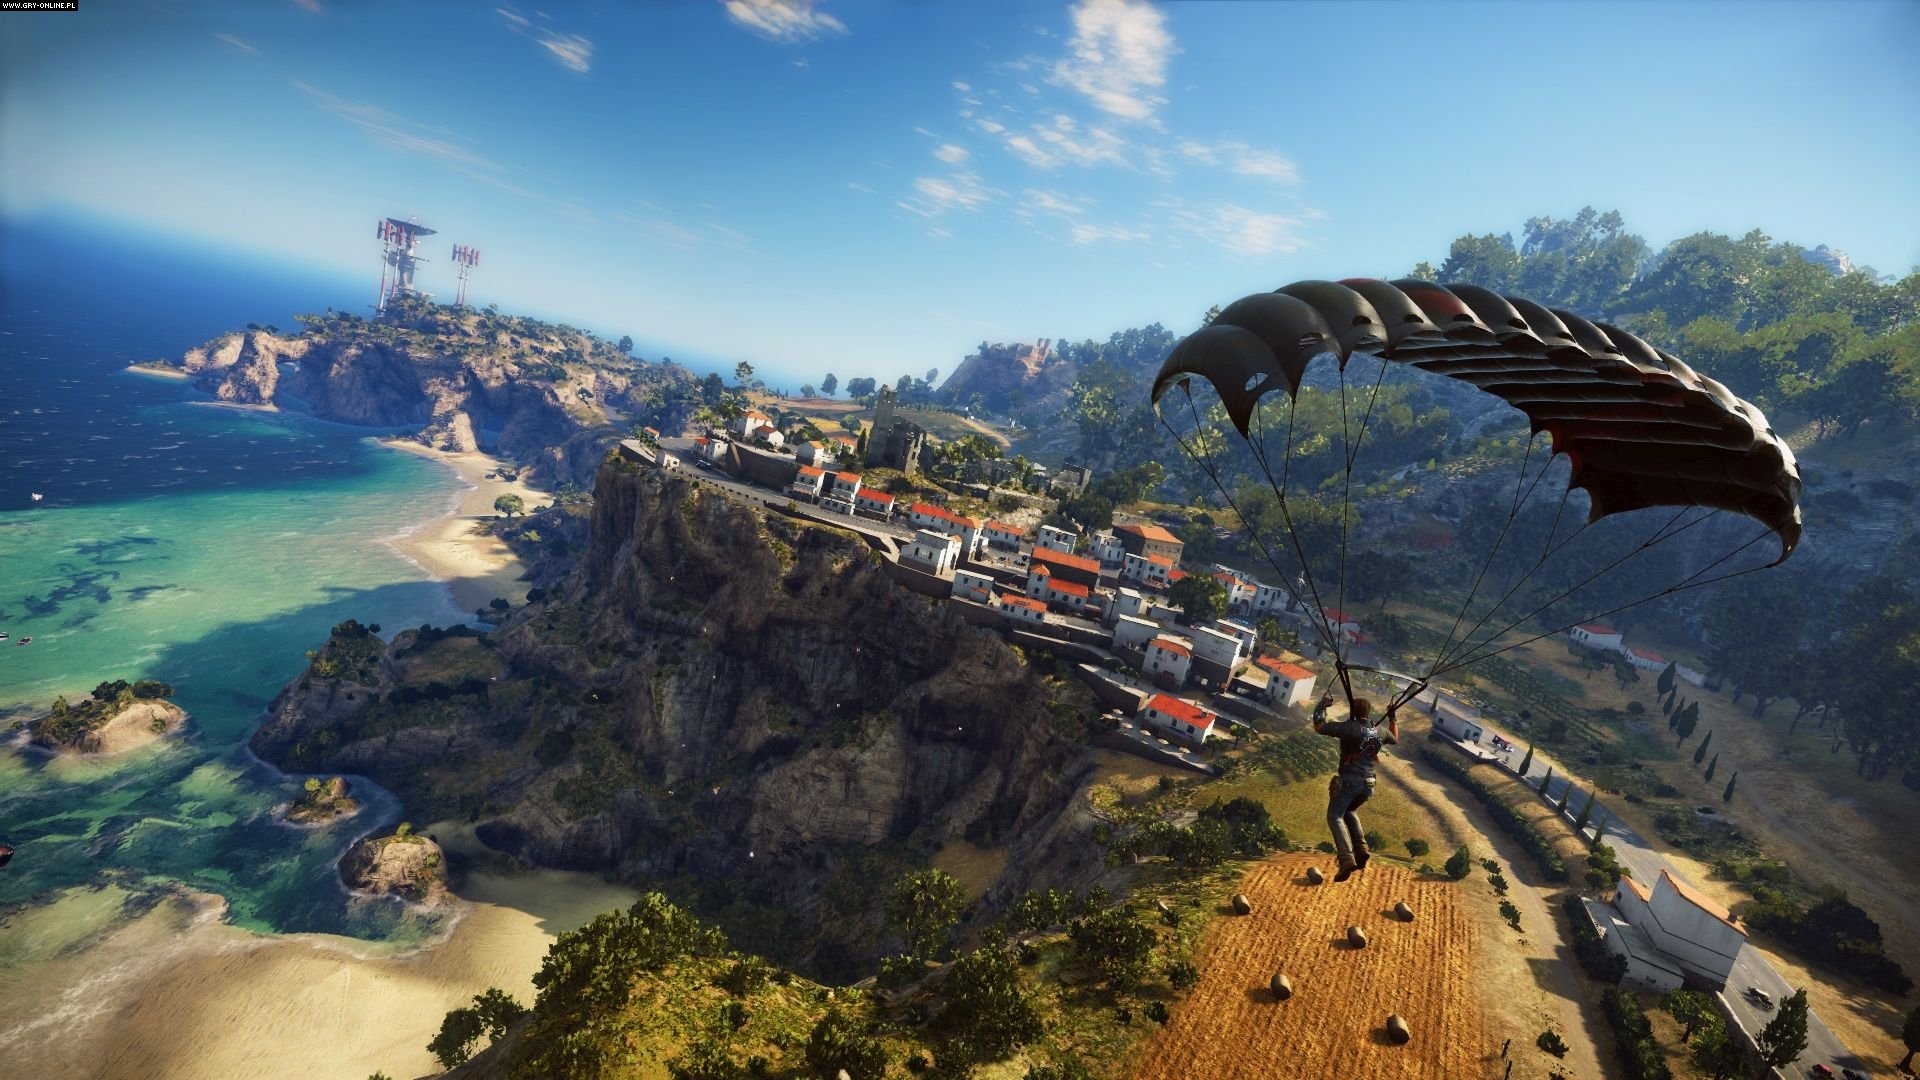 Just Cause 3 PC, XONE, PS4 Games Image 58/90, Avalanche Studios, Square-Enix / Eidos